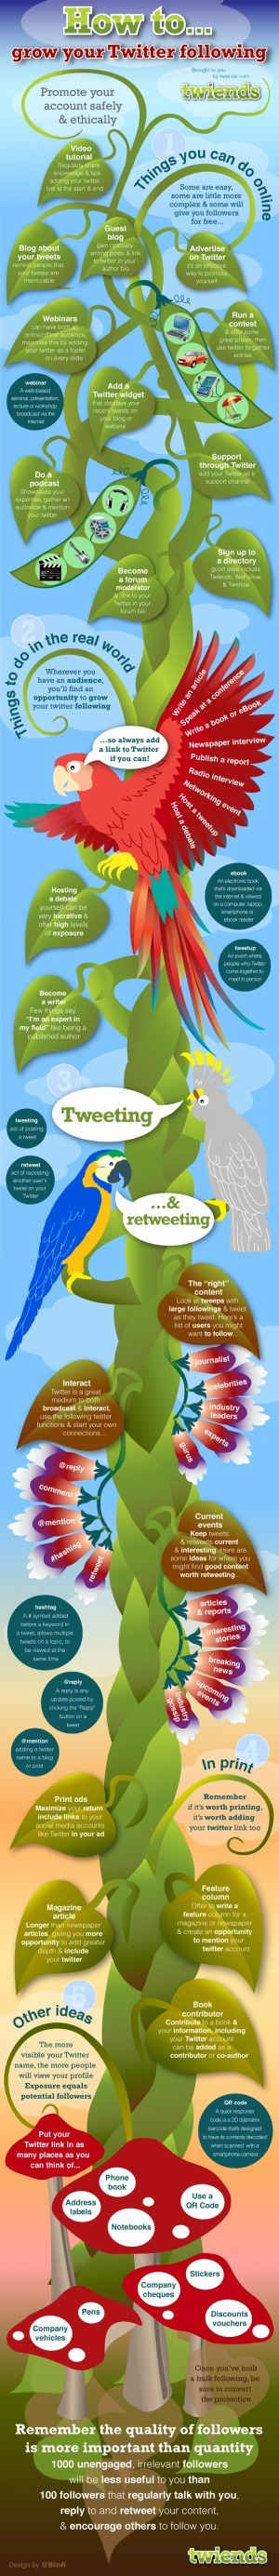 How to Grow a Twitter Following…10.10.11 | Future Trends in Libraries | Scoop.it